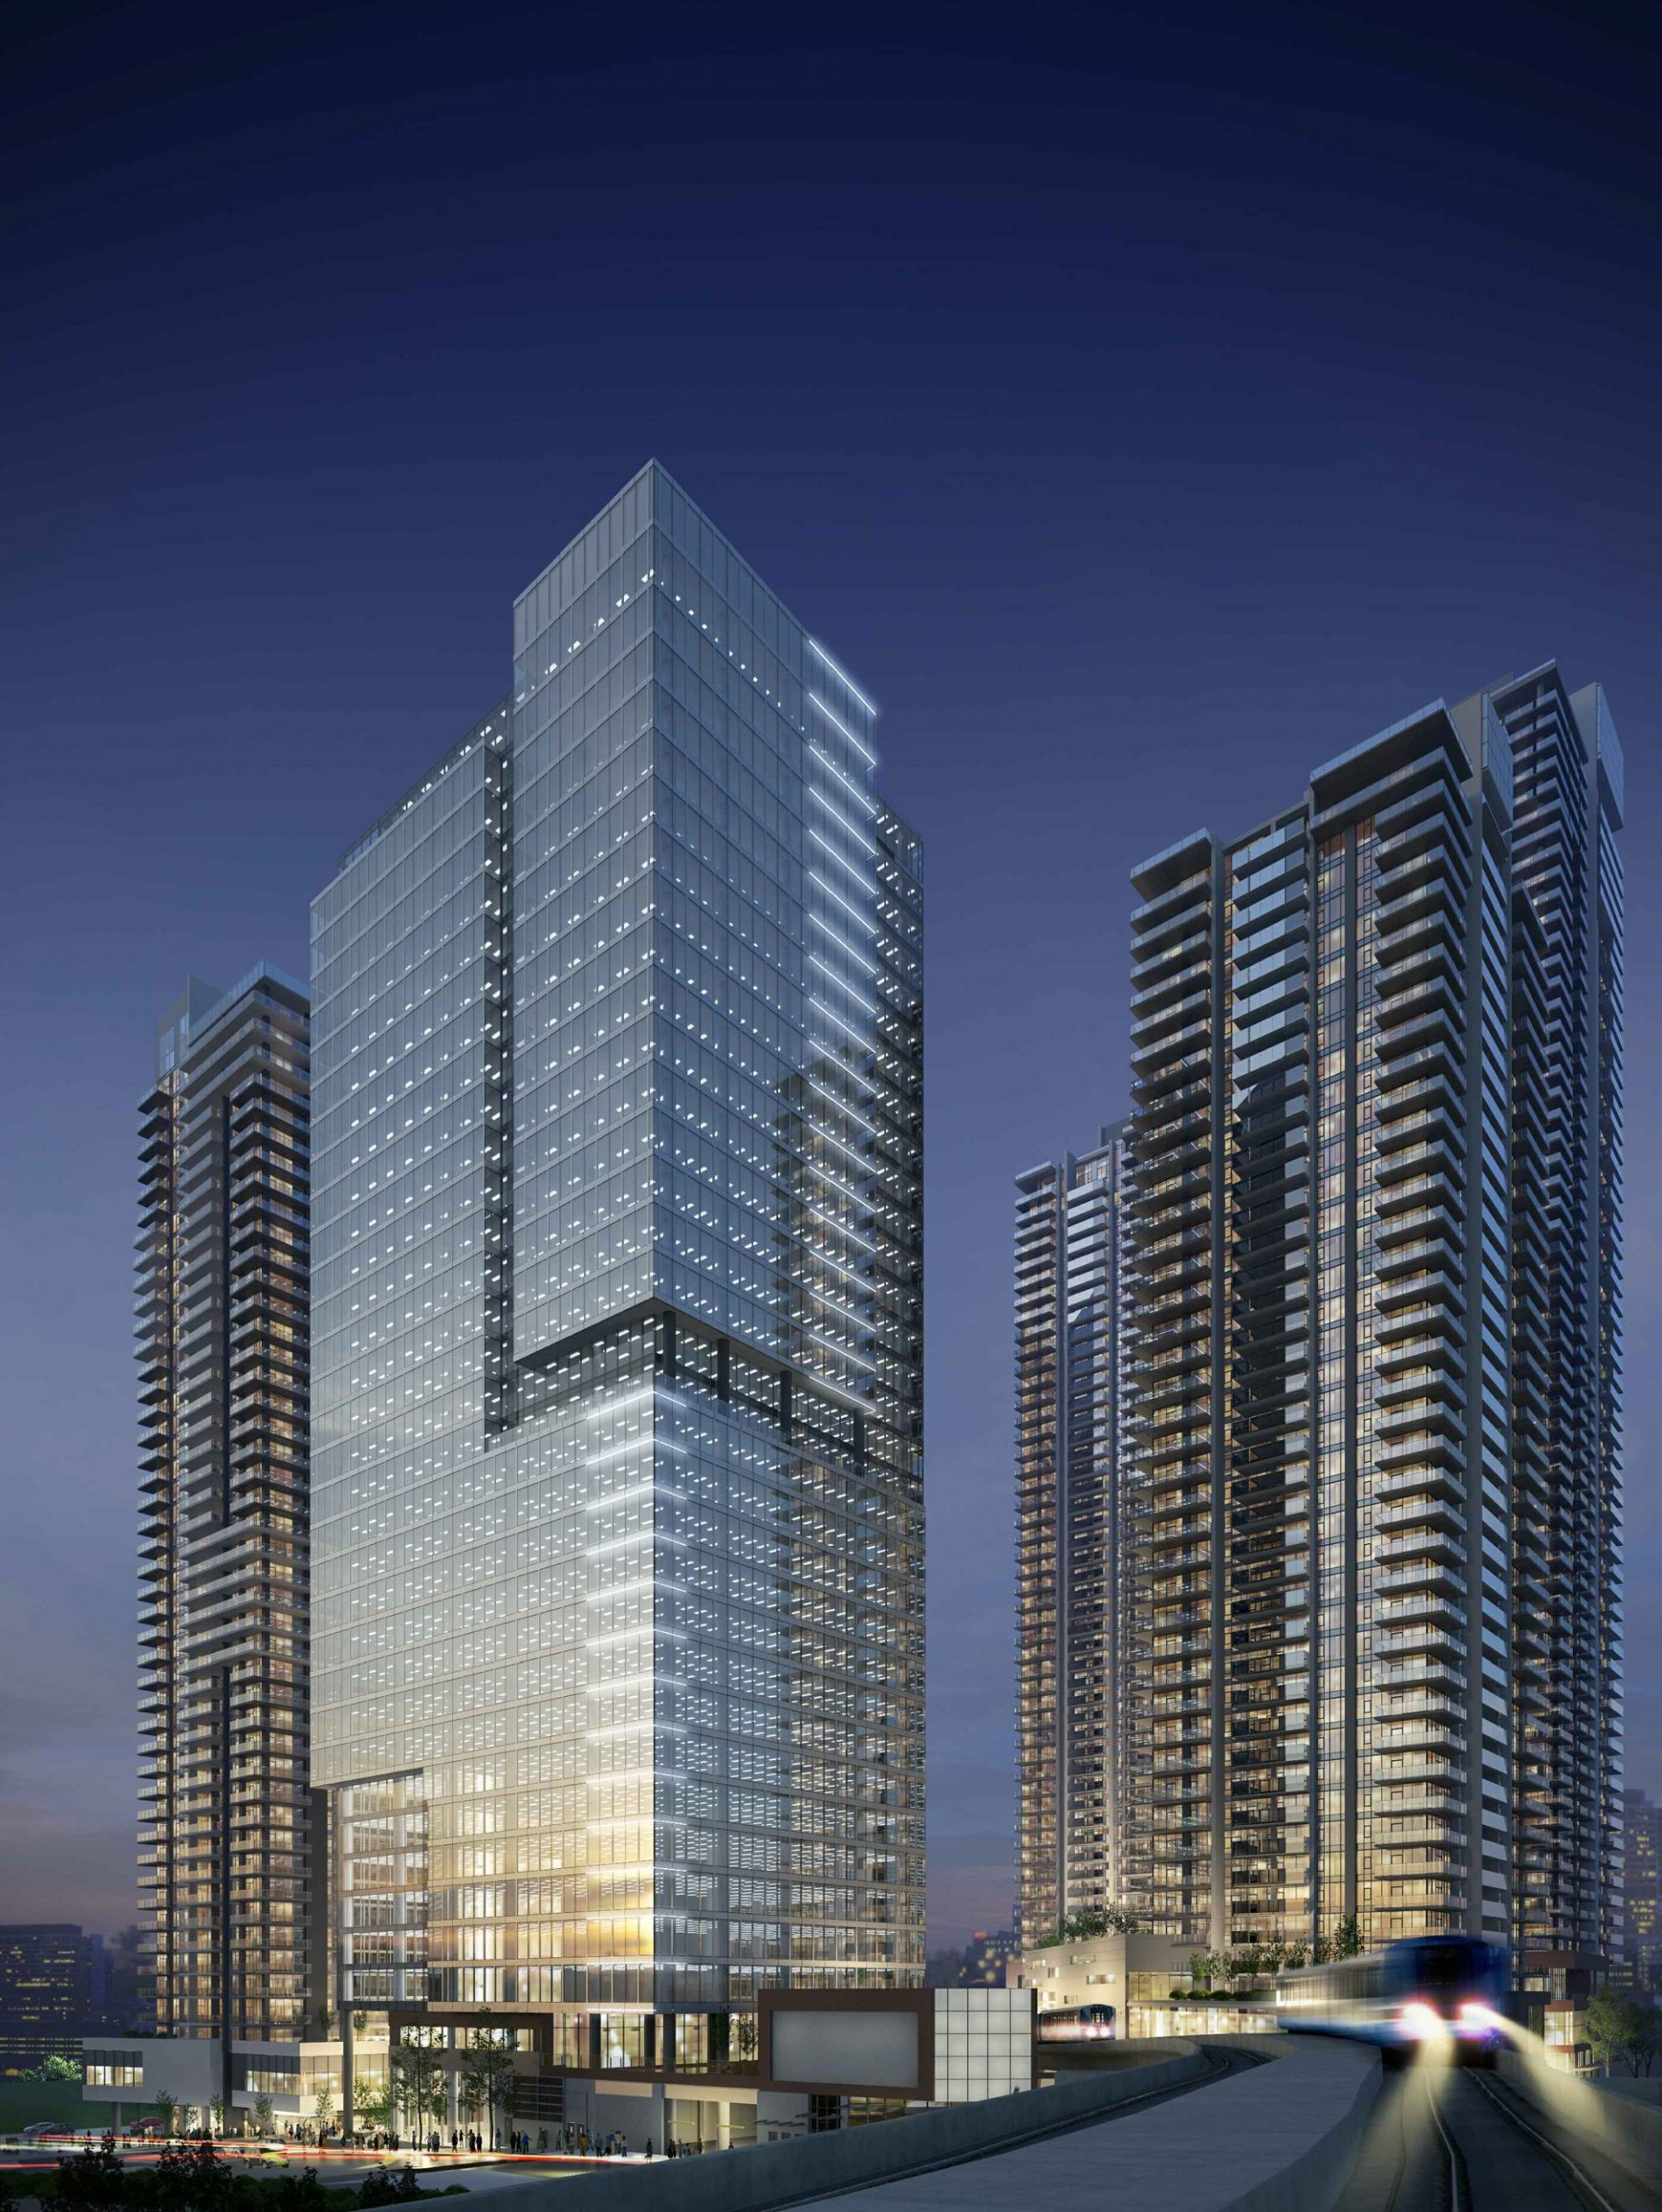 Office tower rendering